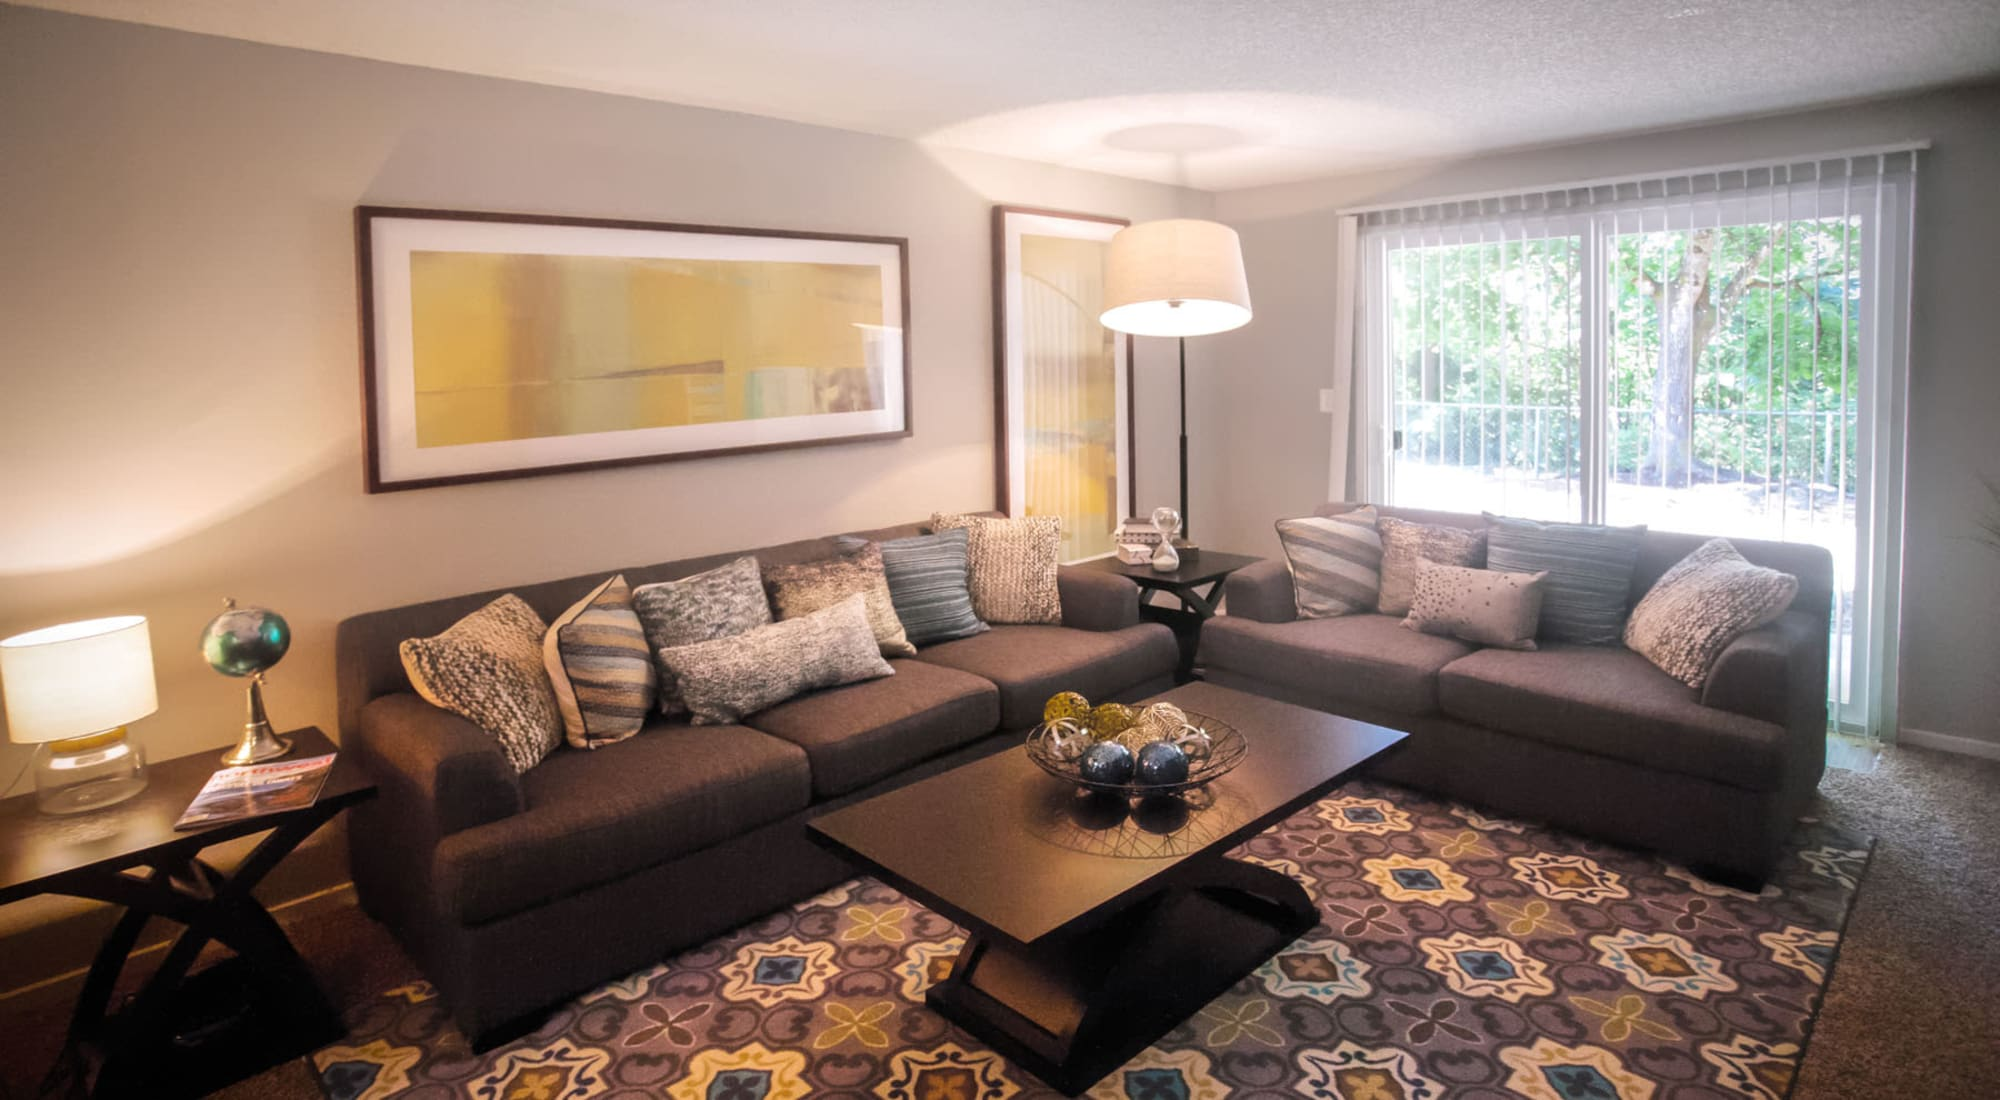 Apply to live at Haven Apartment Homes in Kent, Washington